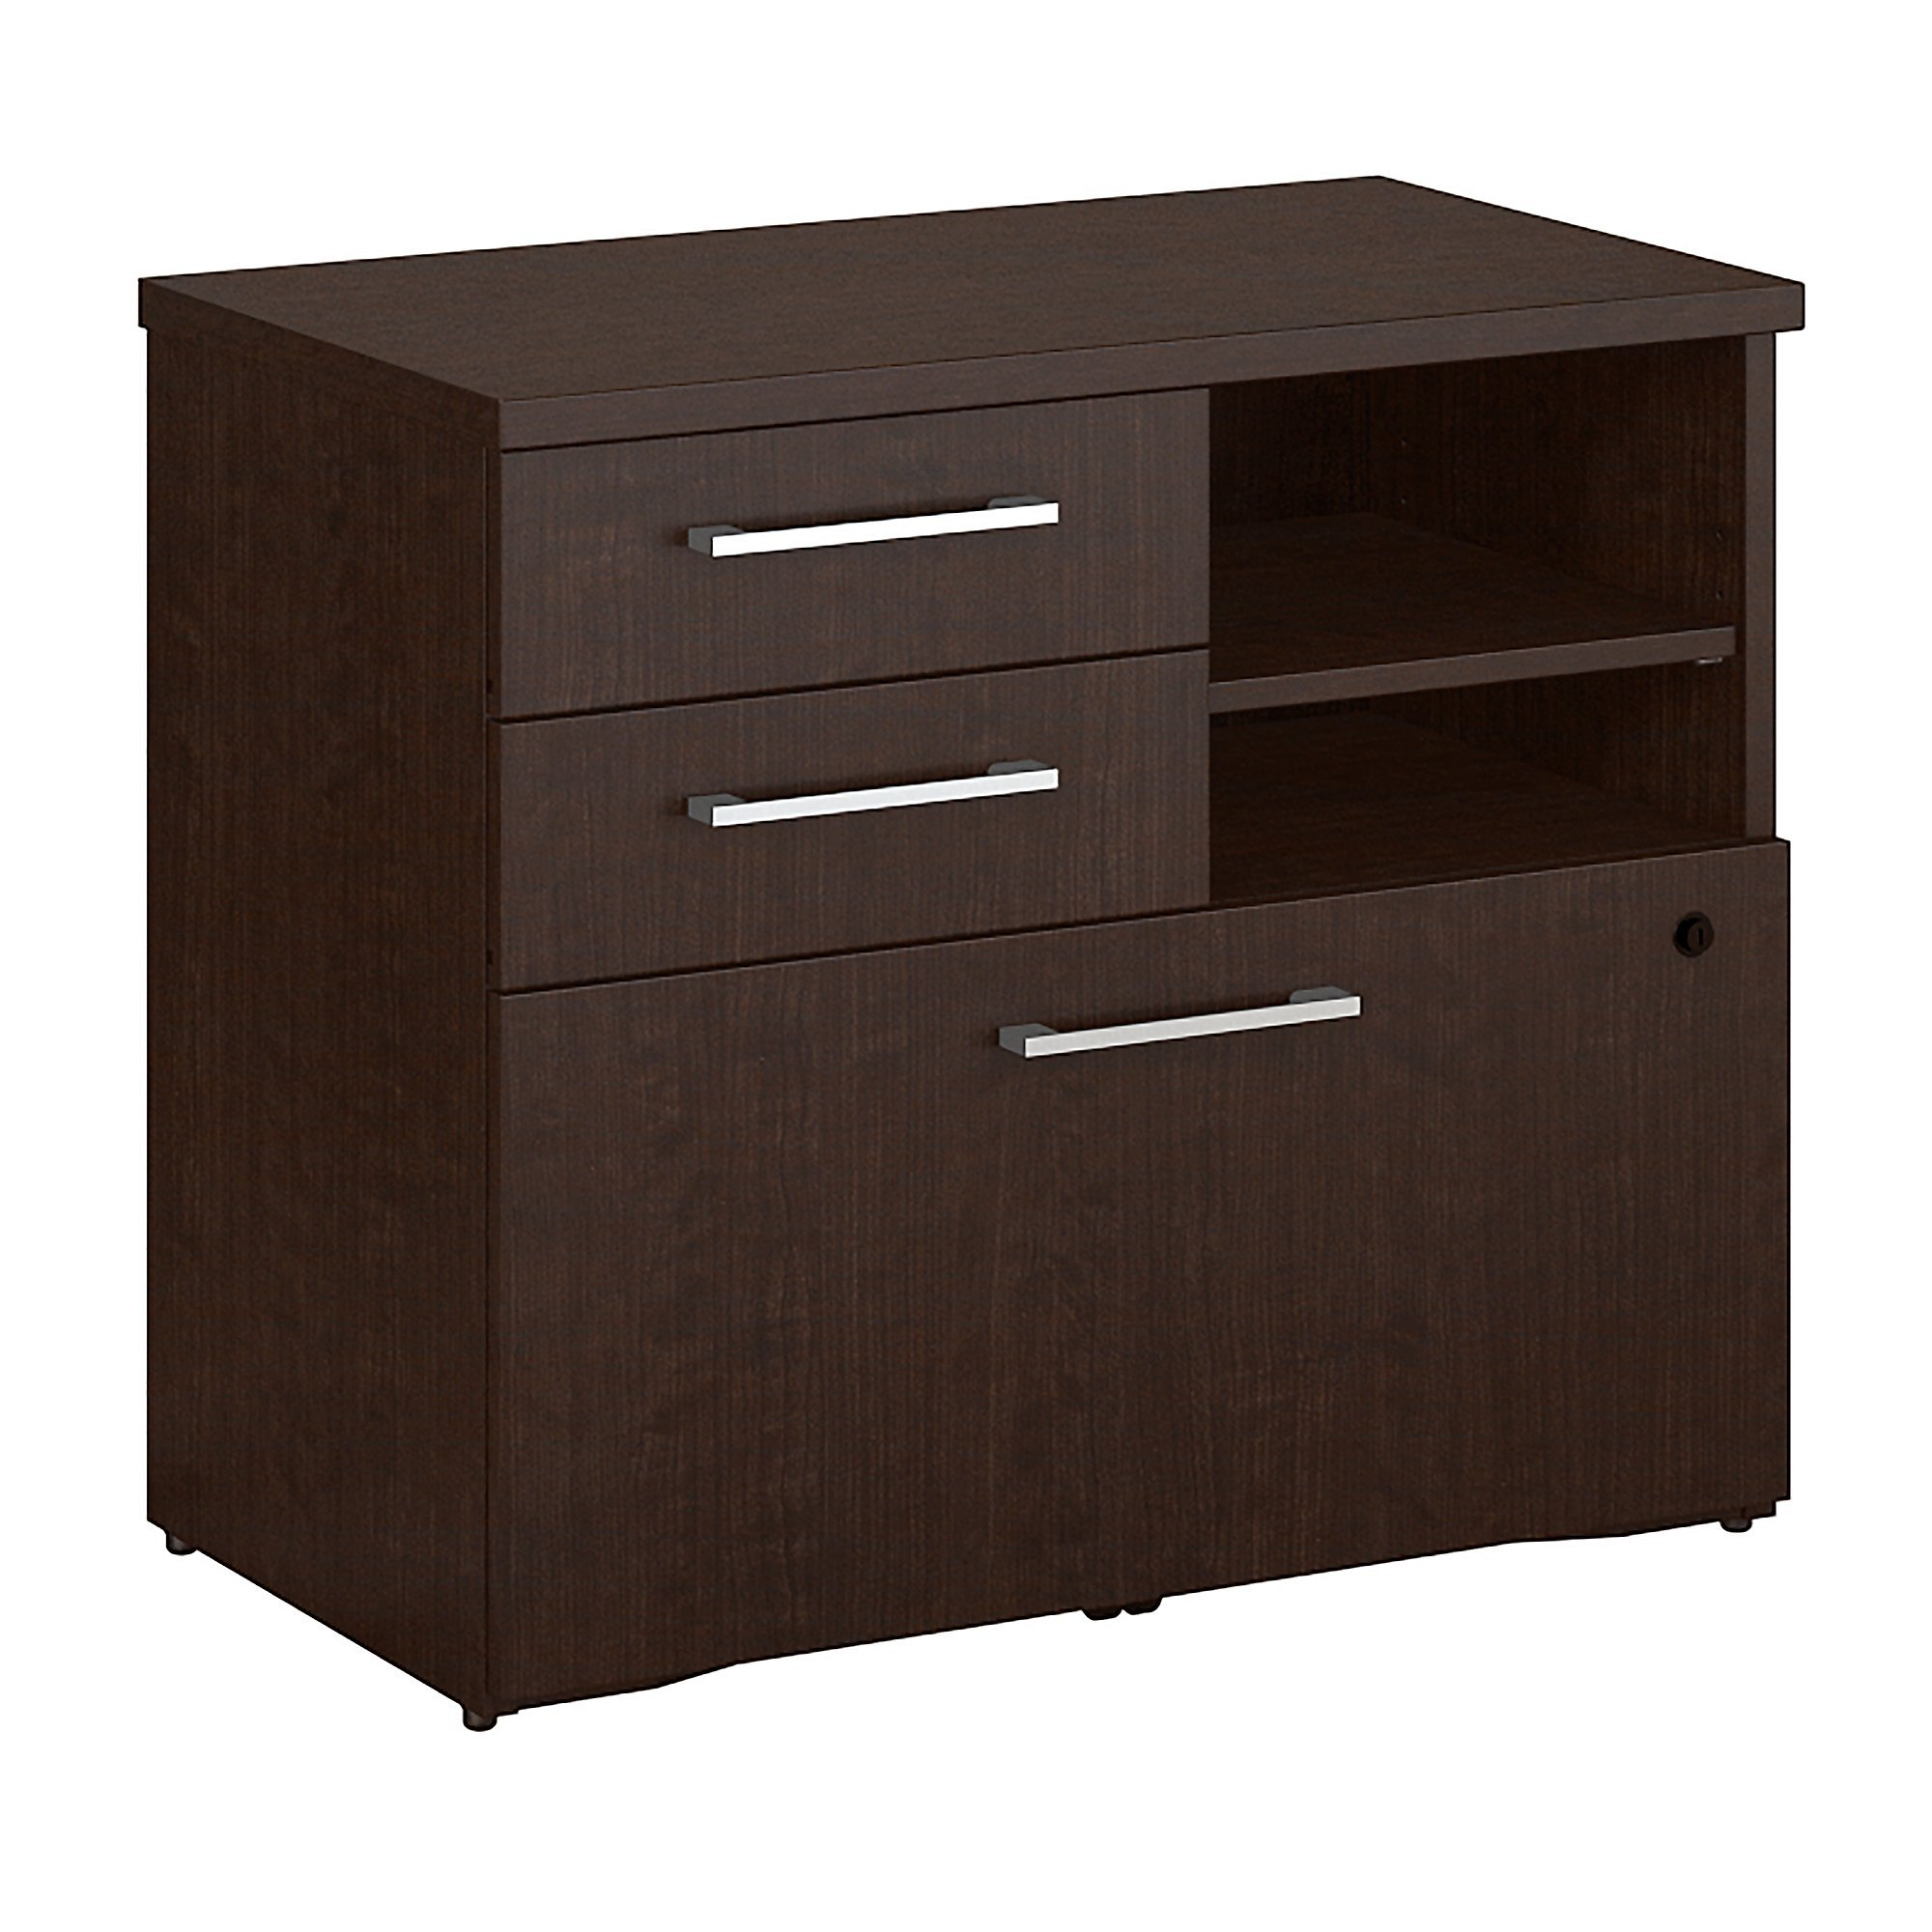 Bush Business Furniture 400 Series 30W Piler Filer Cabinet in Mocha Cherry